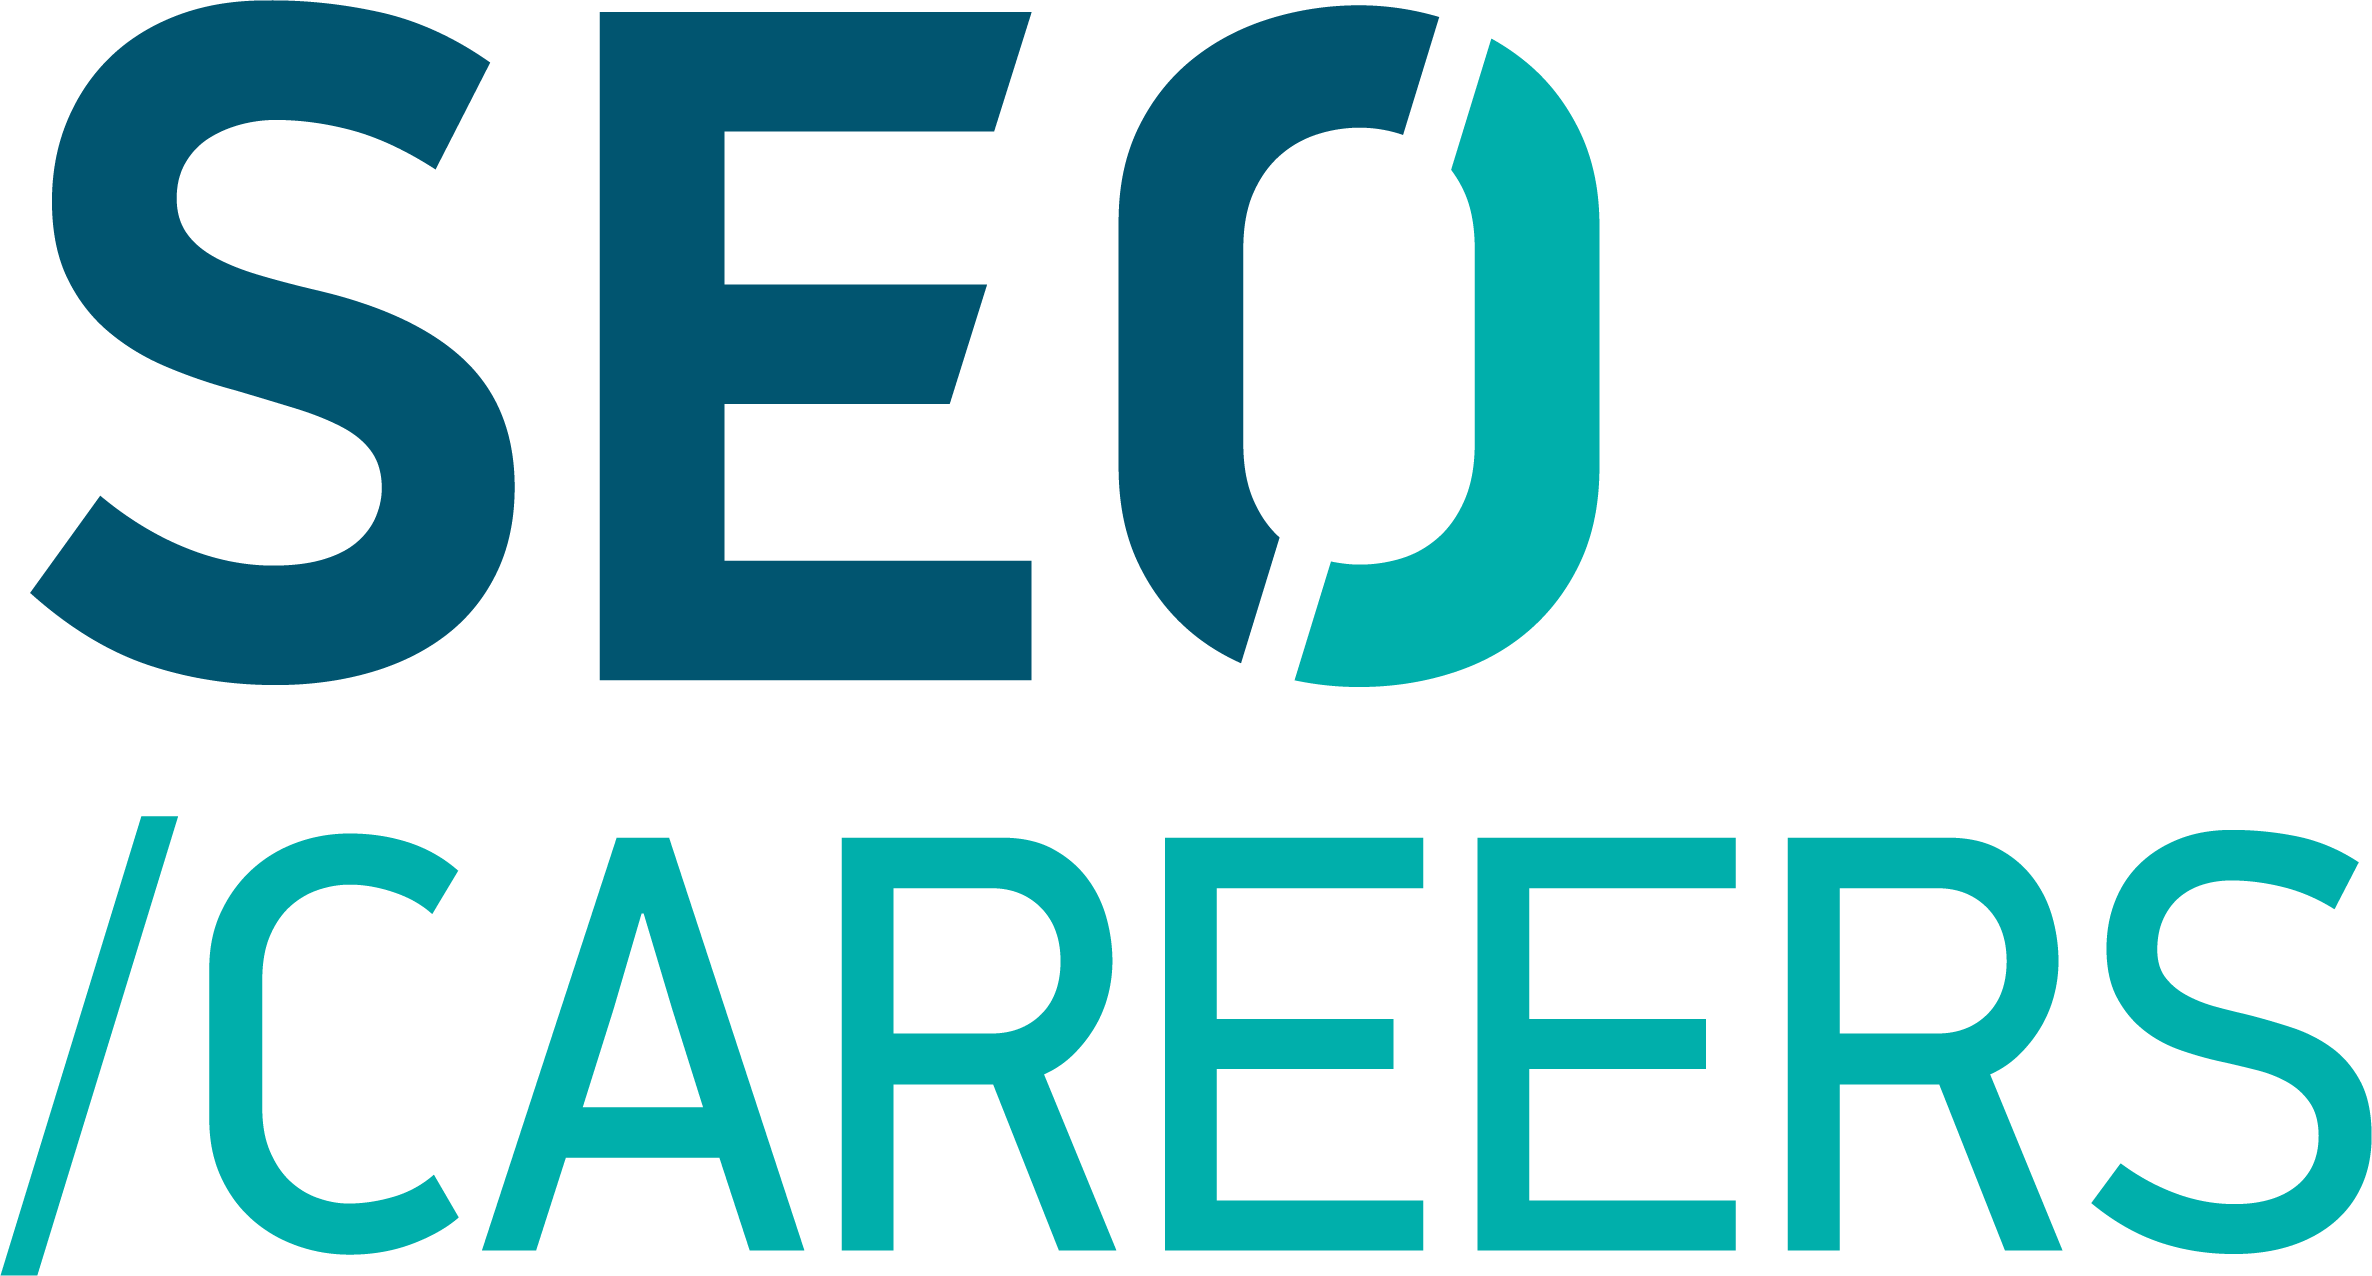 Logo image for SEO Careers